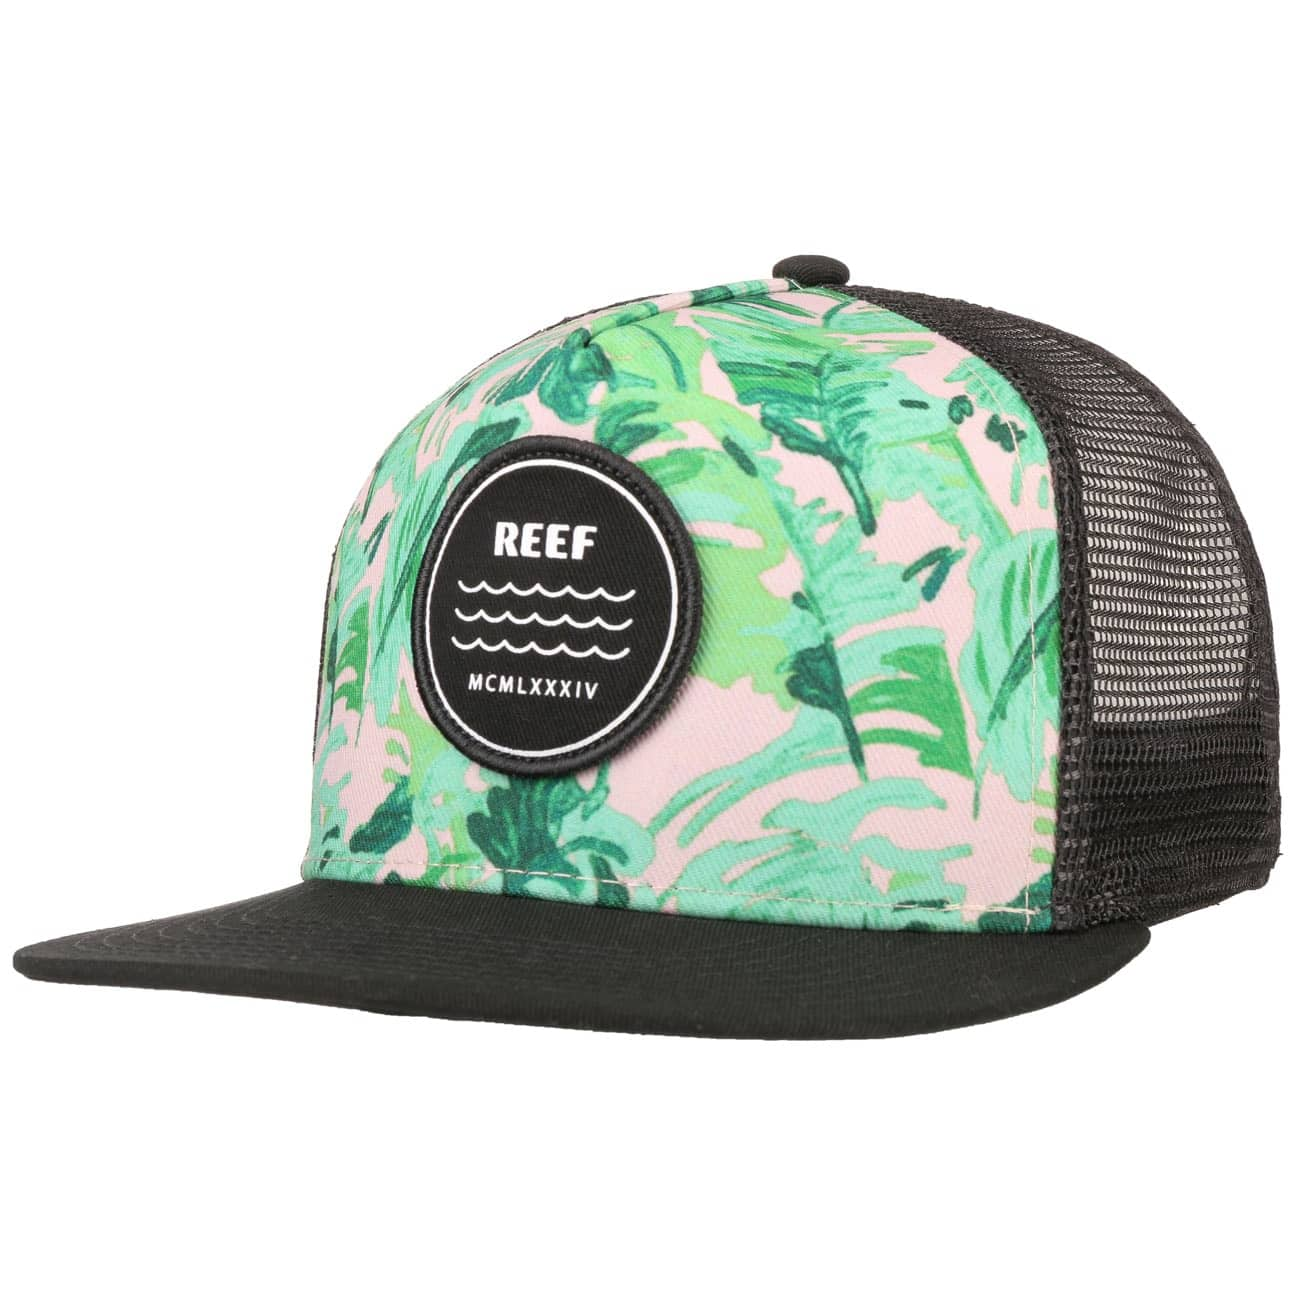 Casquette Trucker Beach Palms by Reef  casquette trucker